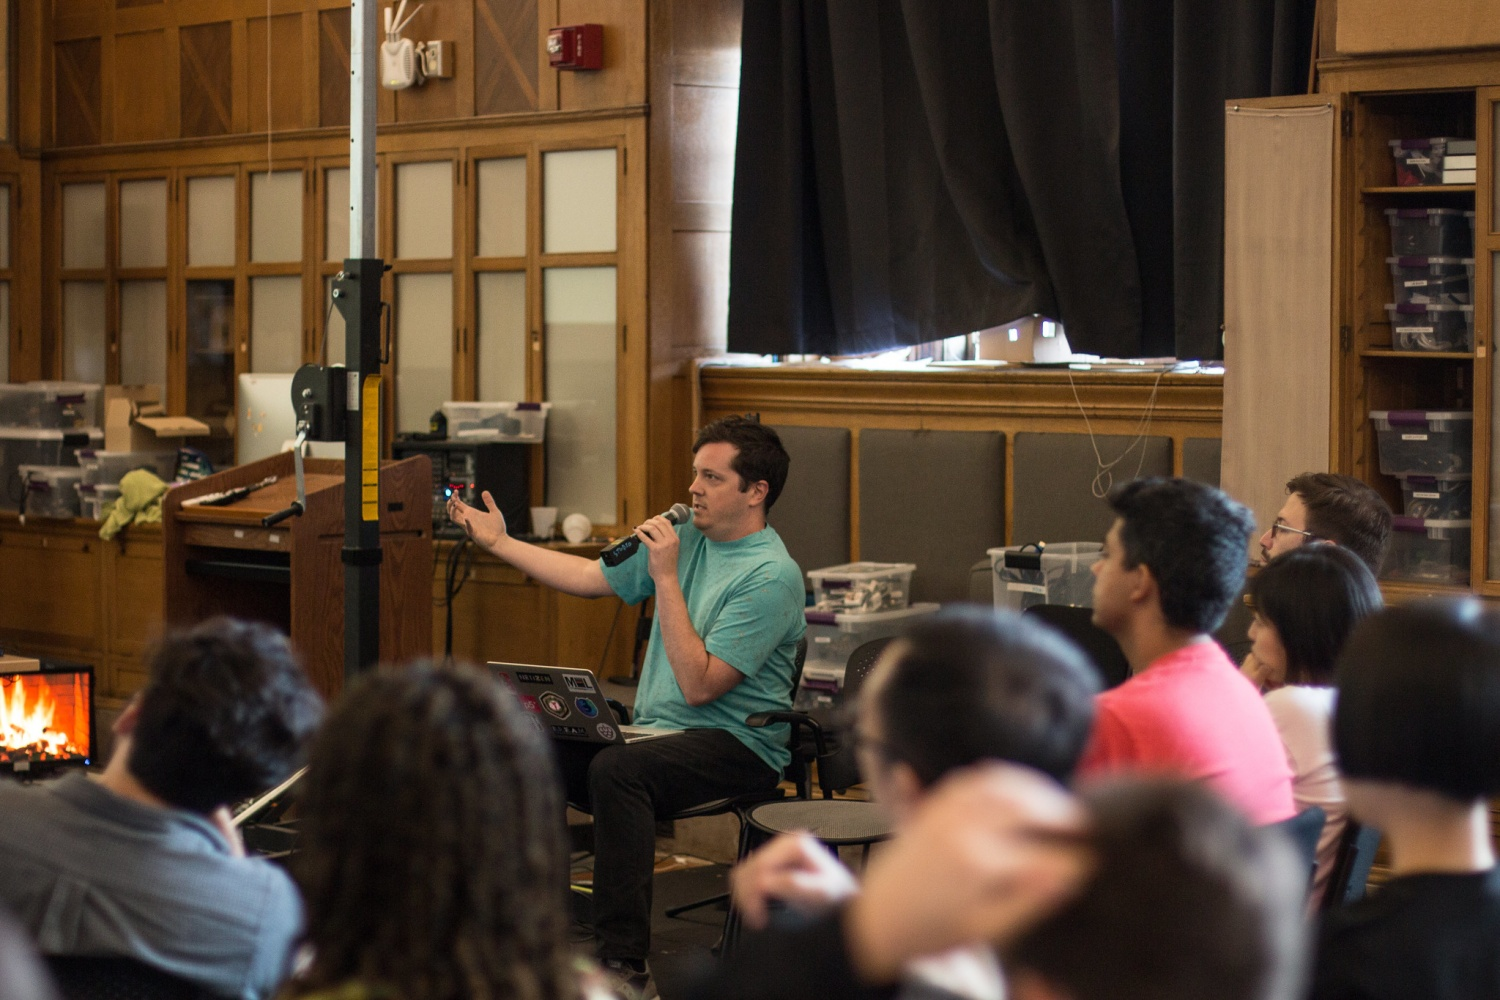 Man sitting in front of the classroom speaking energetically into a microphone